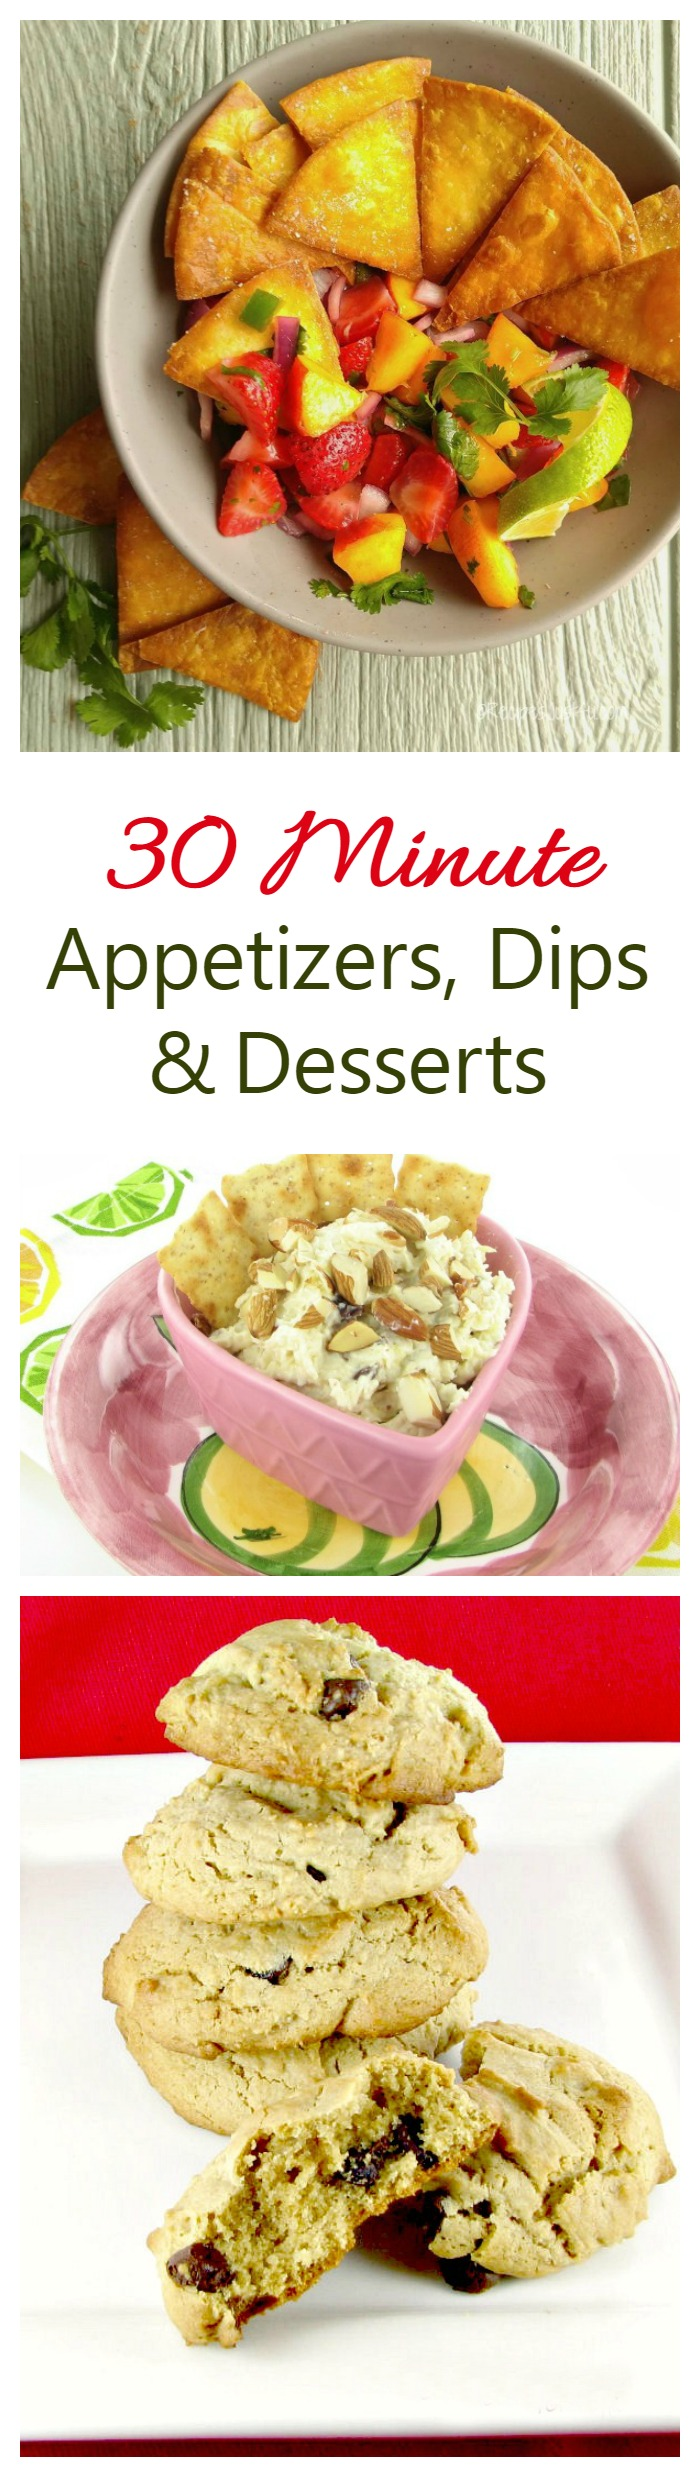 These appetizers, dips and desserts are ready to serve your party guests in less than 30 minutes